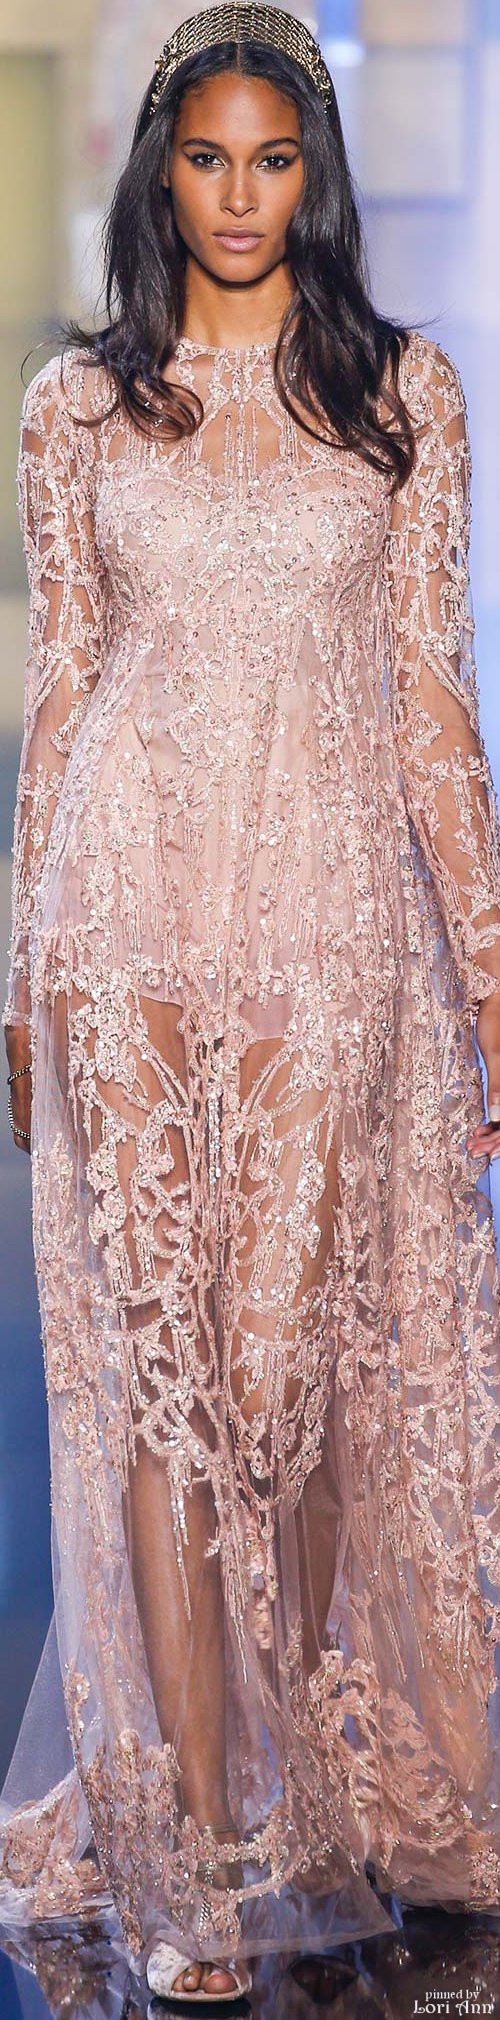 Elie Saab ~ Couture Pink Embellished Sheer Gown Fall 2015 | moda ...